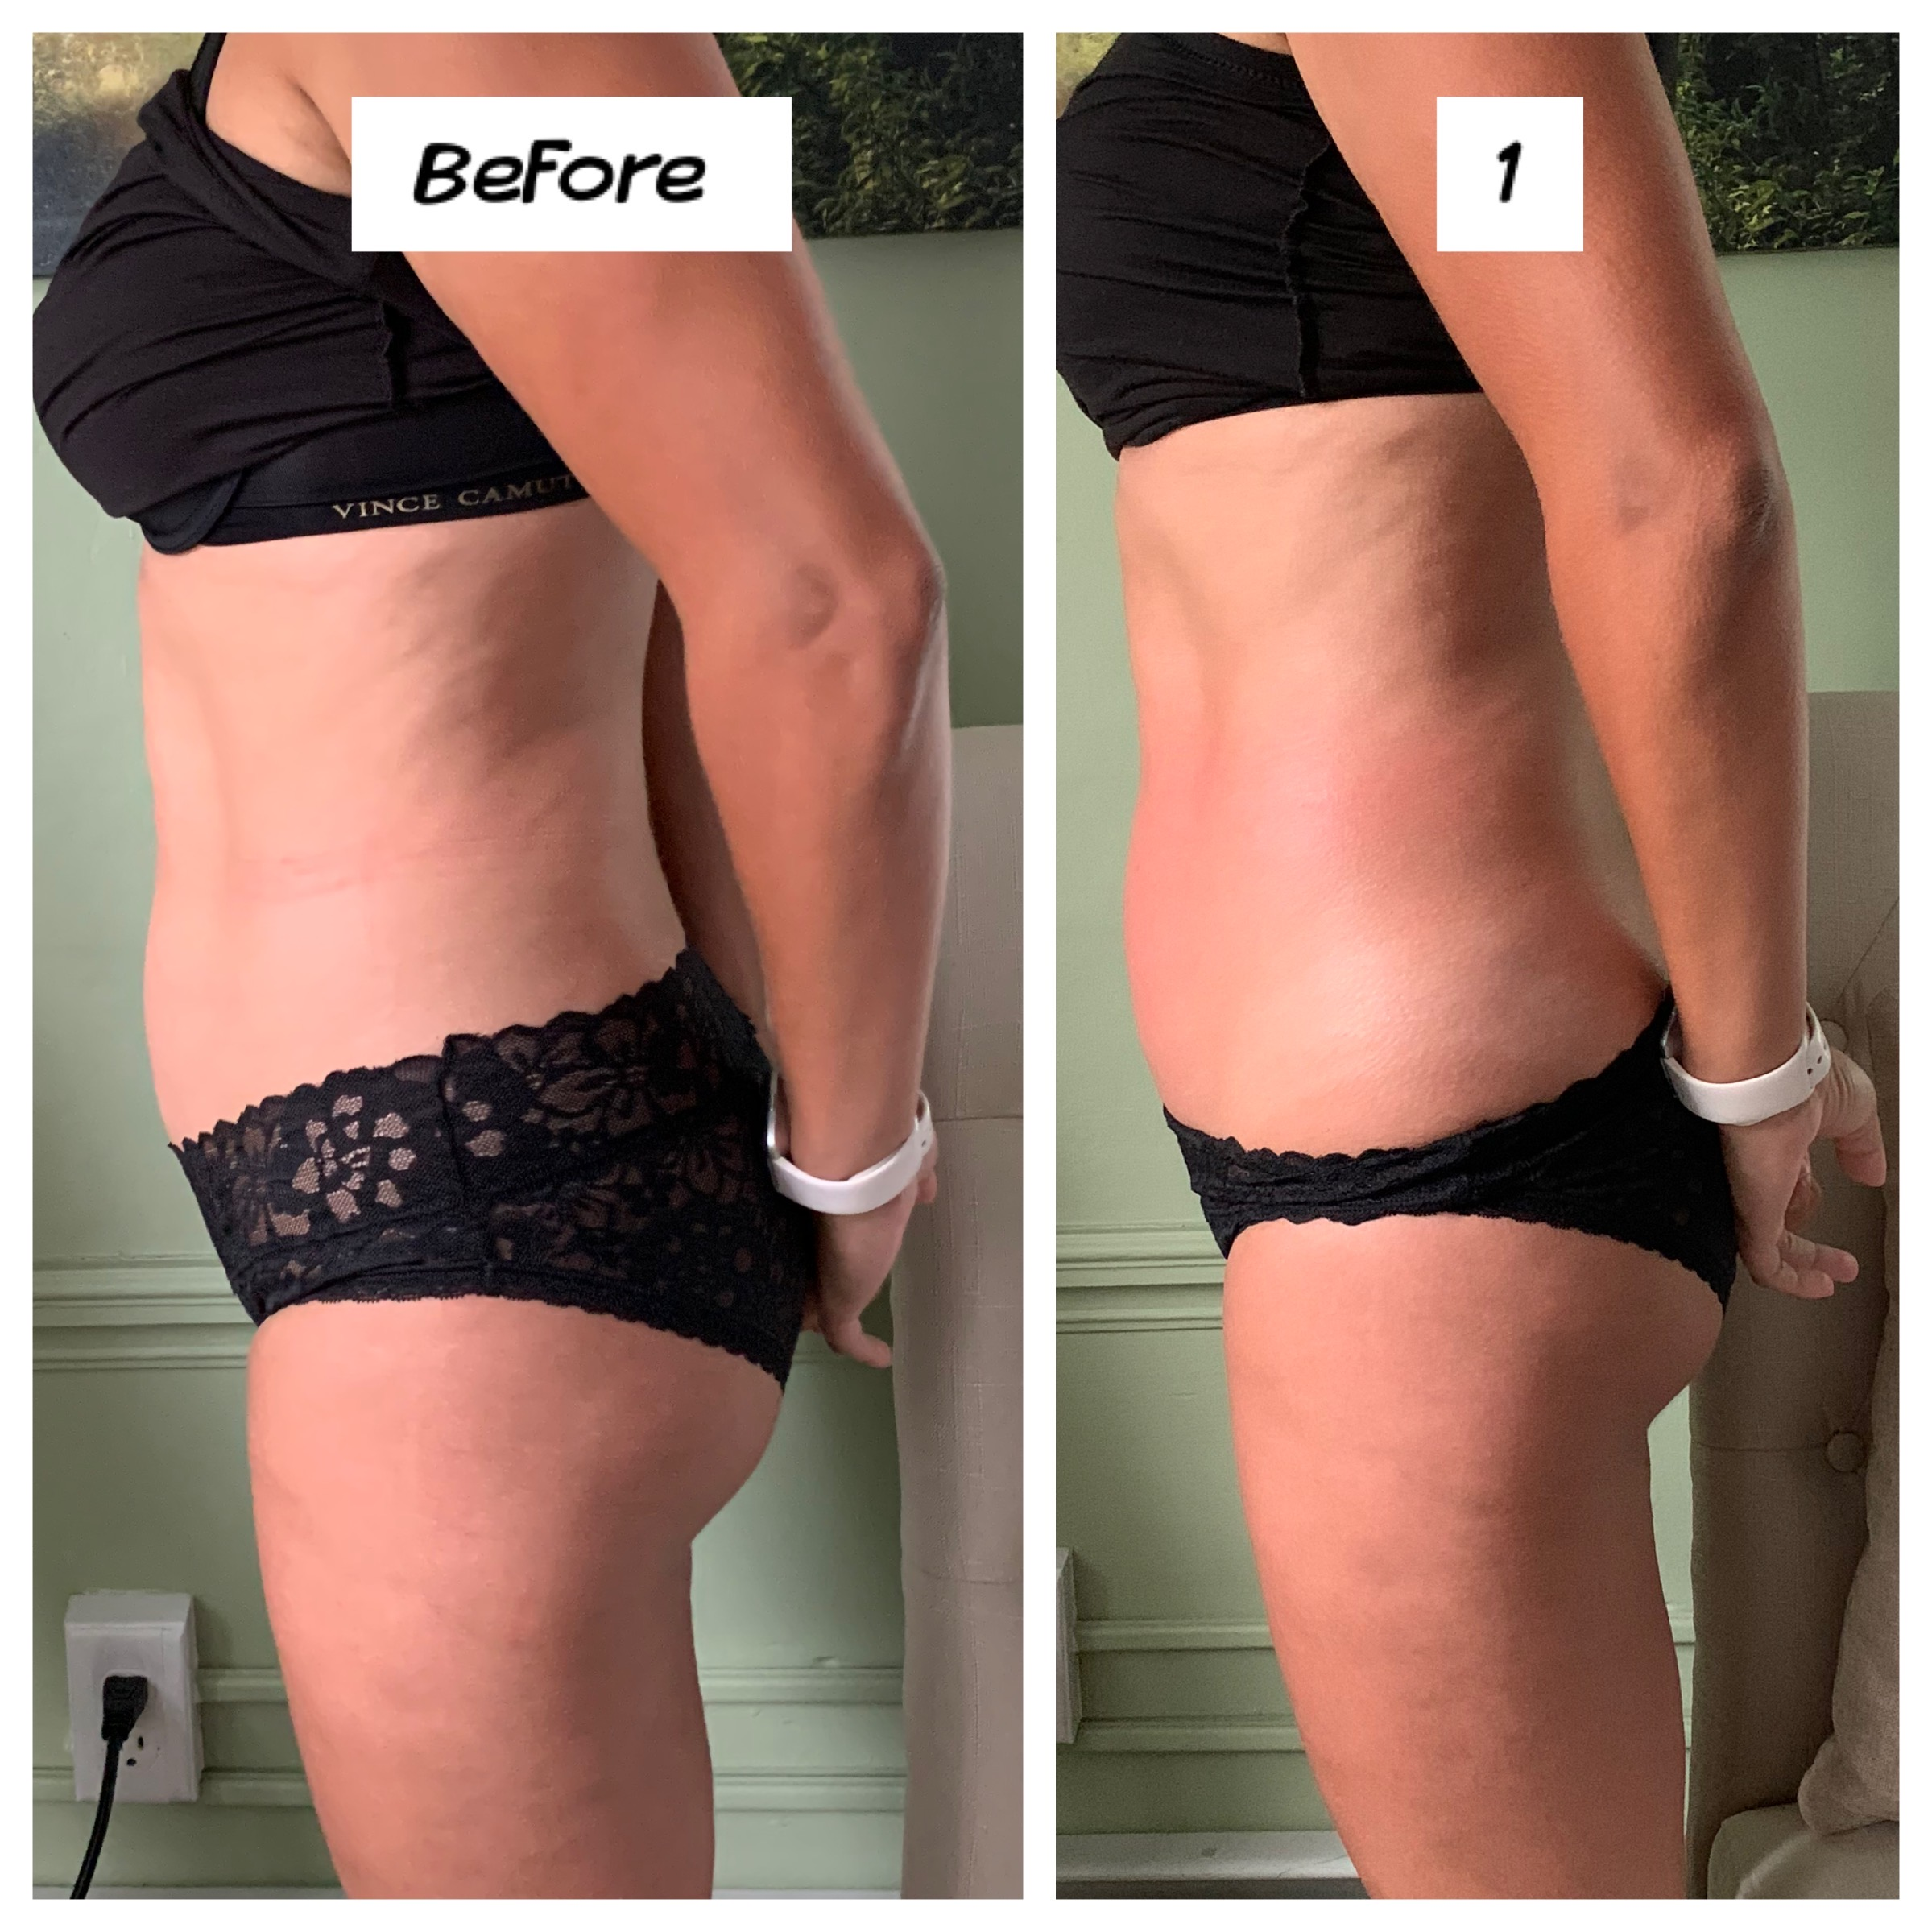 Cavitation Lipo Before and After